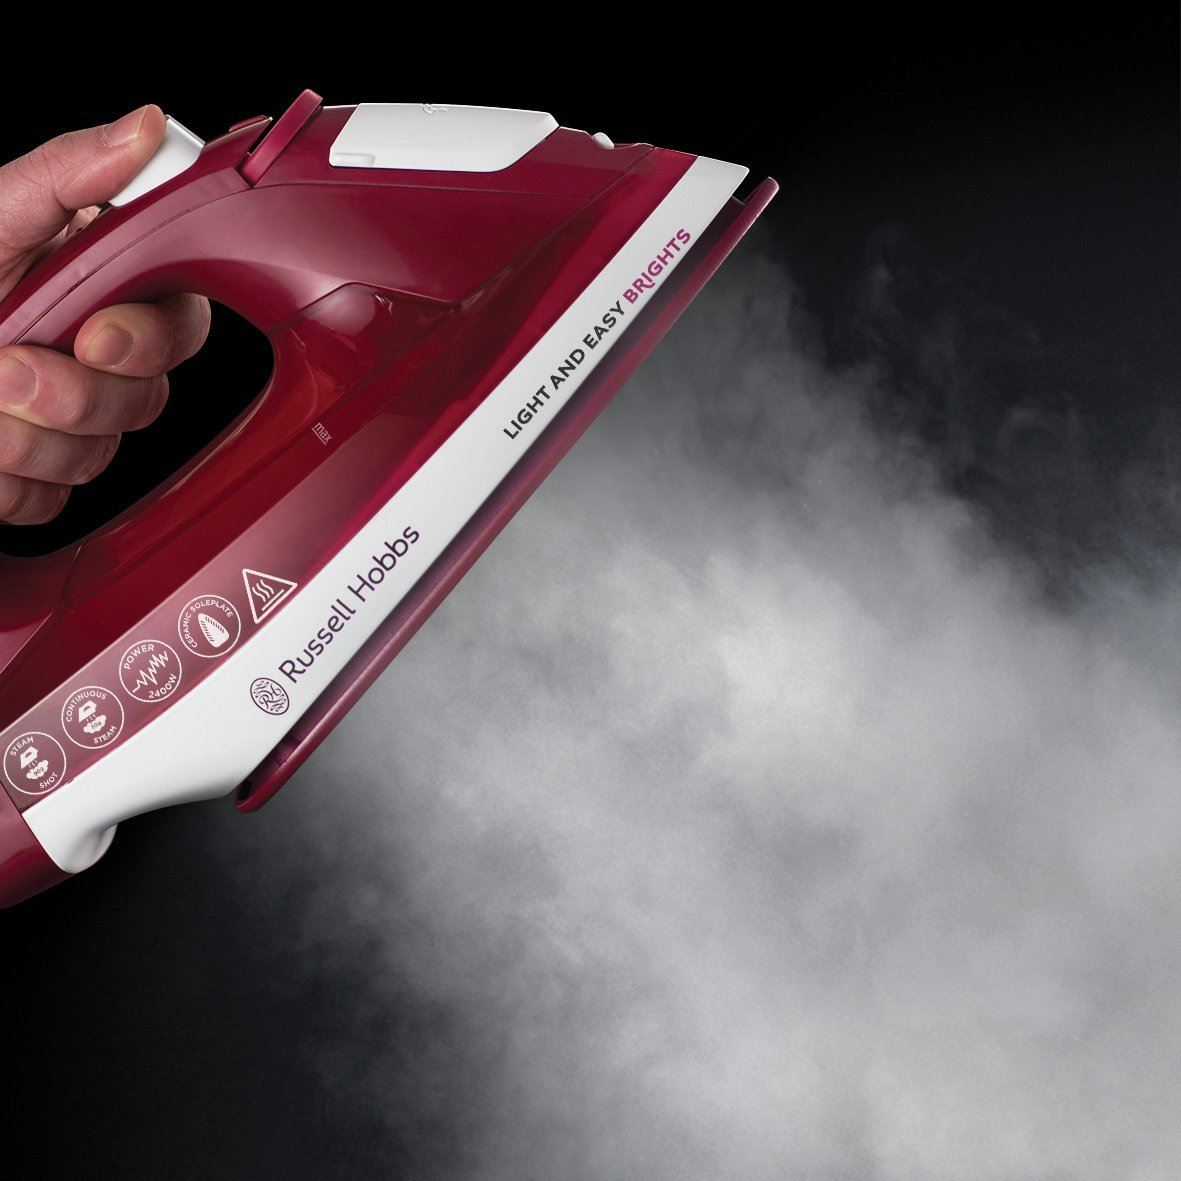 Russell-Hobbs-24840-Light-amp-Easy-Brights-Steam-Iron-with-Ceramic-Soleplate-2400W thumbnail 23